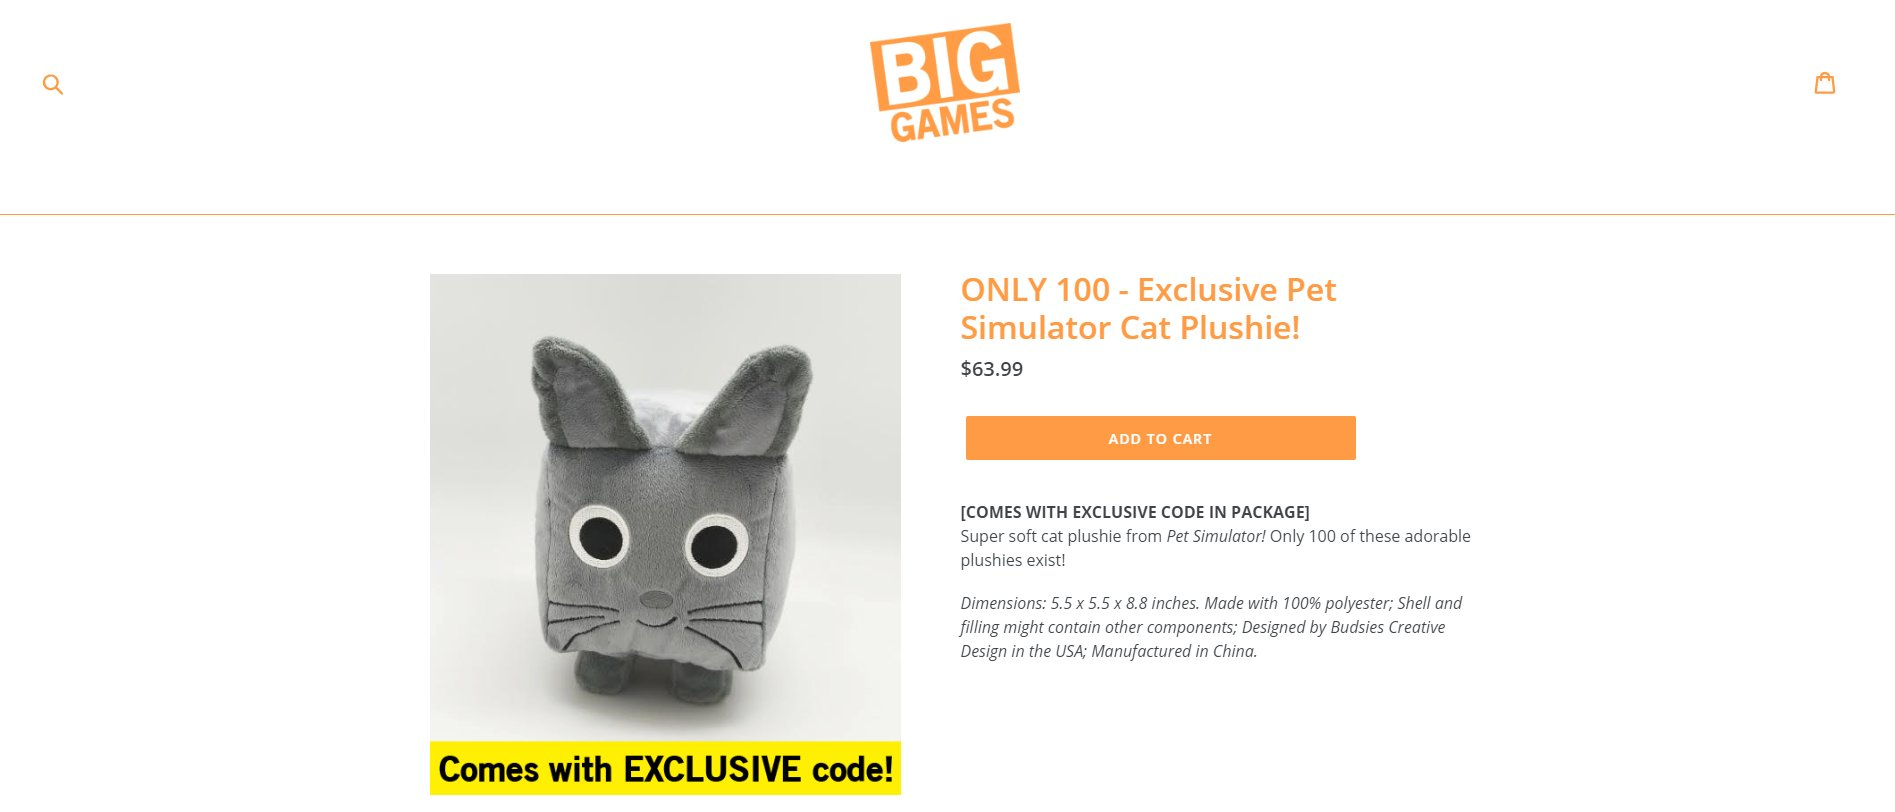 Roblox Pet Simulator Big Cat Code Big Games On Twitter Our Shop Is Live Come Grab A Limited Time Cat Plushie From Pet Simulator Each Order Comes With An Exclusive In Game Code For A Secret Pet